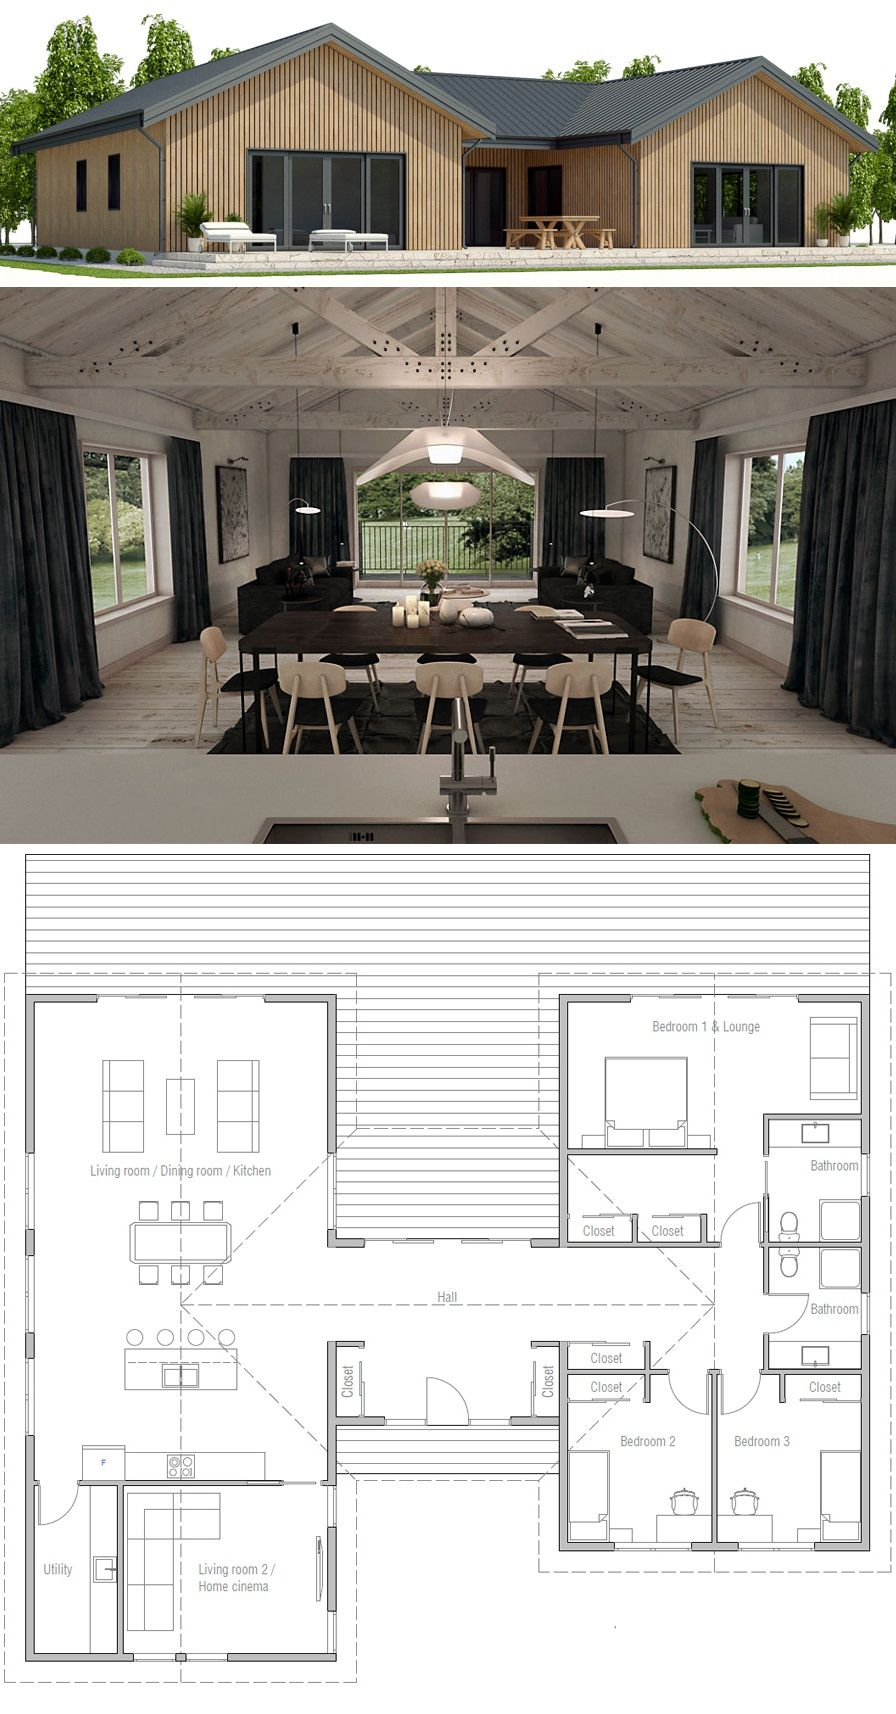 Small House Plan | tiny houses | Pinterest | Small house plans ...